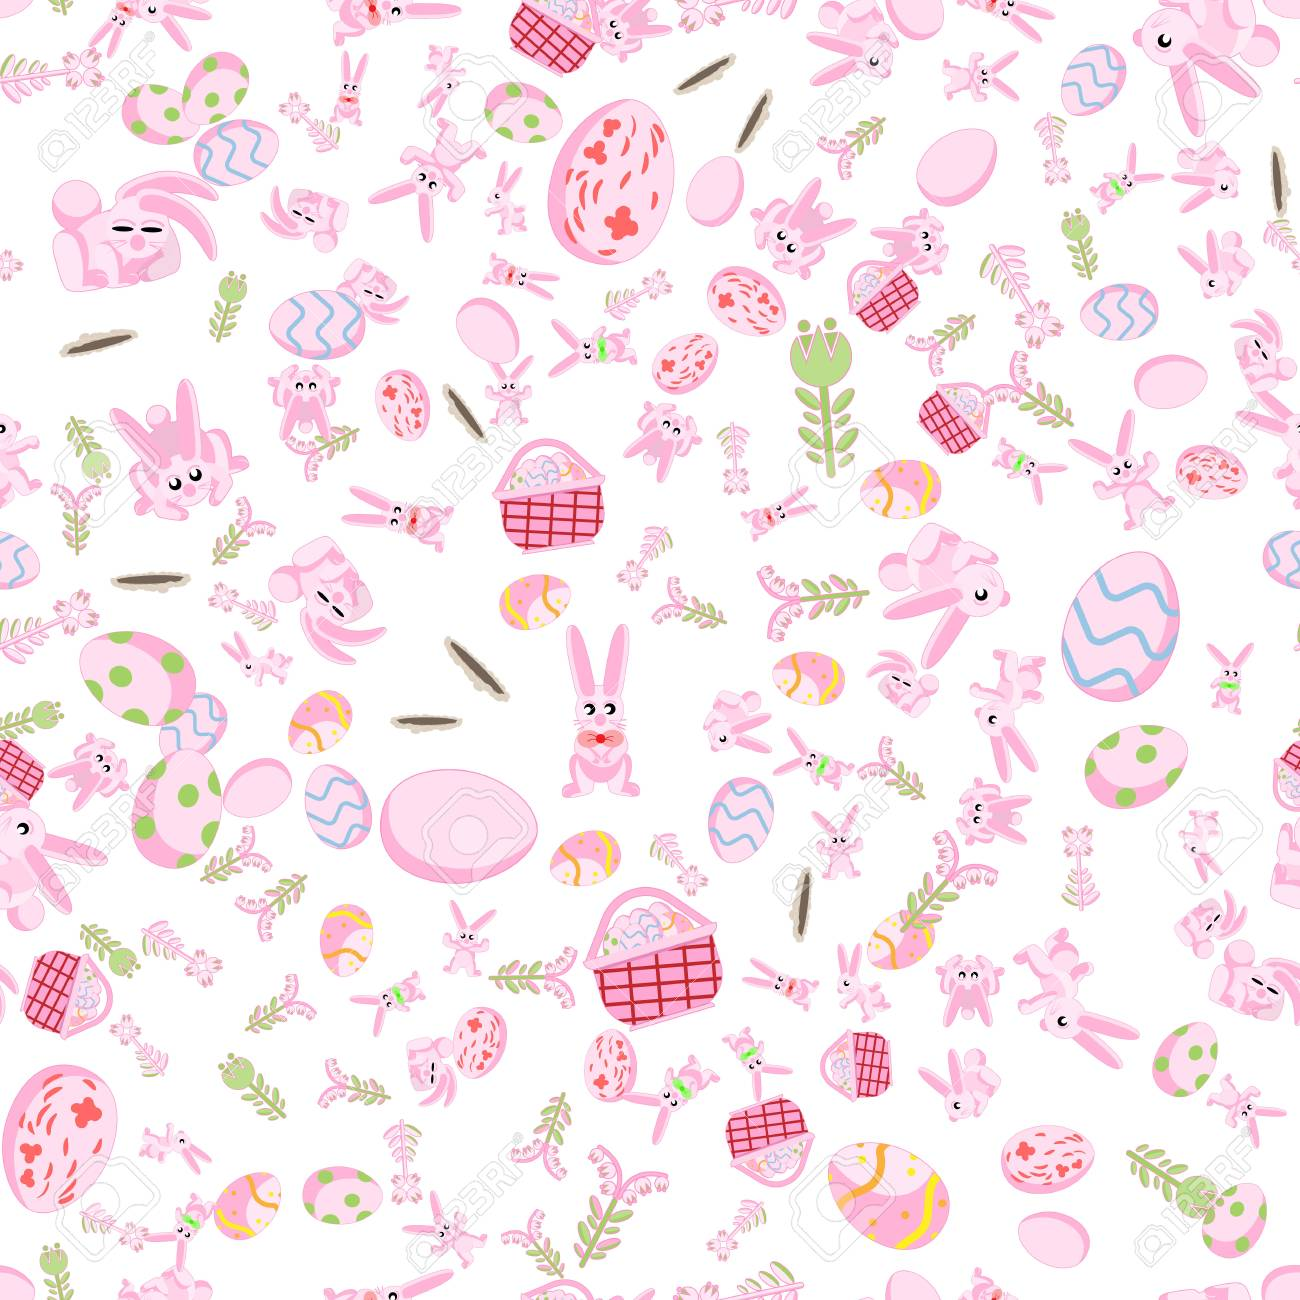 Flat Pattern Of Pink Rabbits In Different Poses Plants And Easter Eggs Isolated White Background